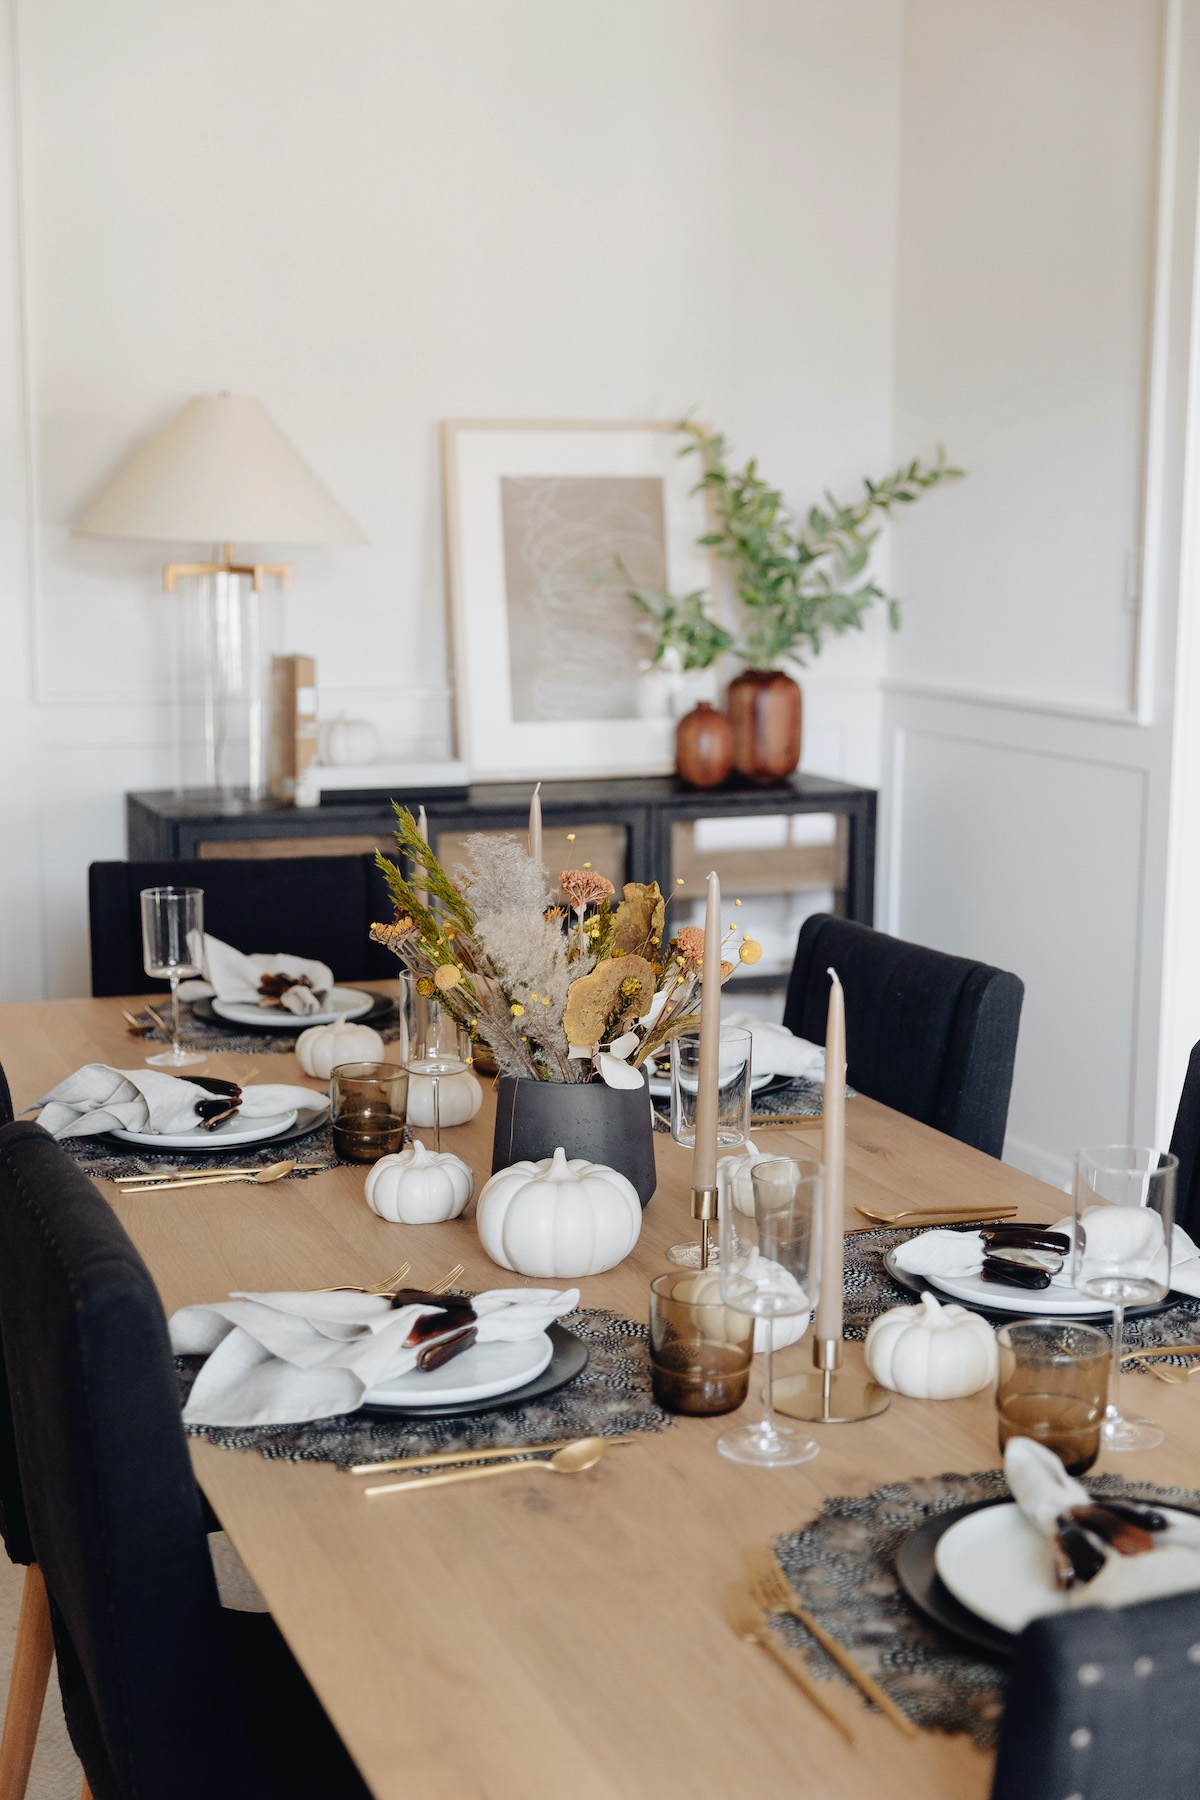 Brighton Butler Fall table with black and white plates and feather placemat, dried flower arrangement